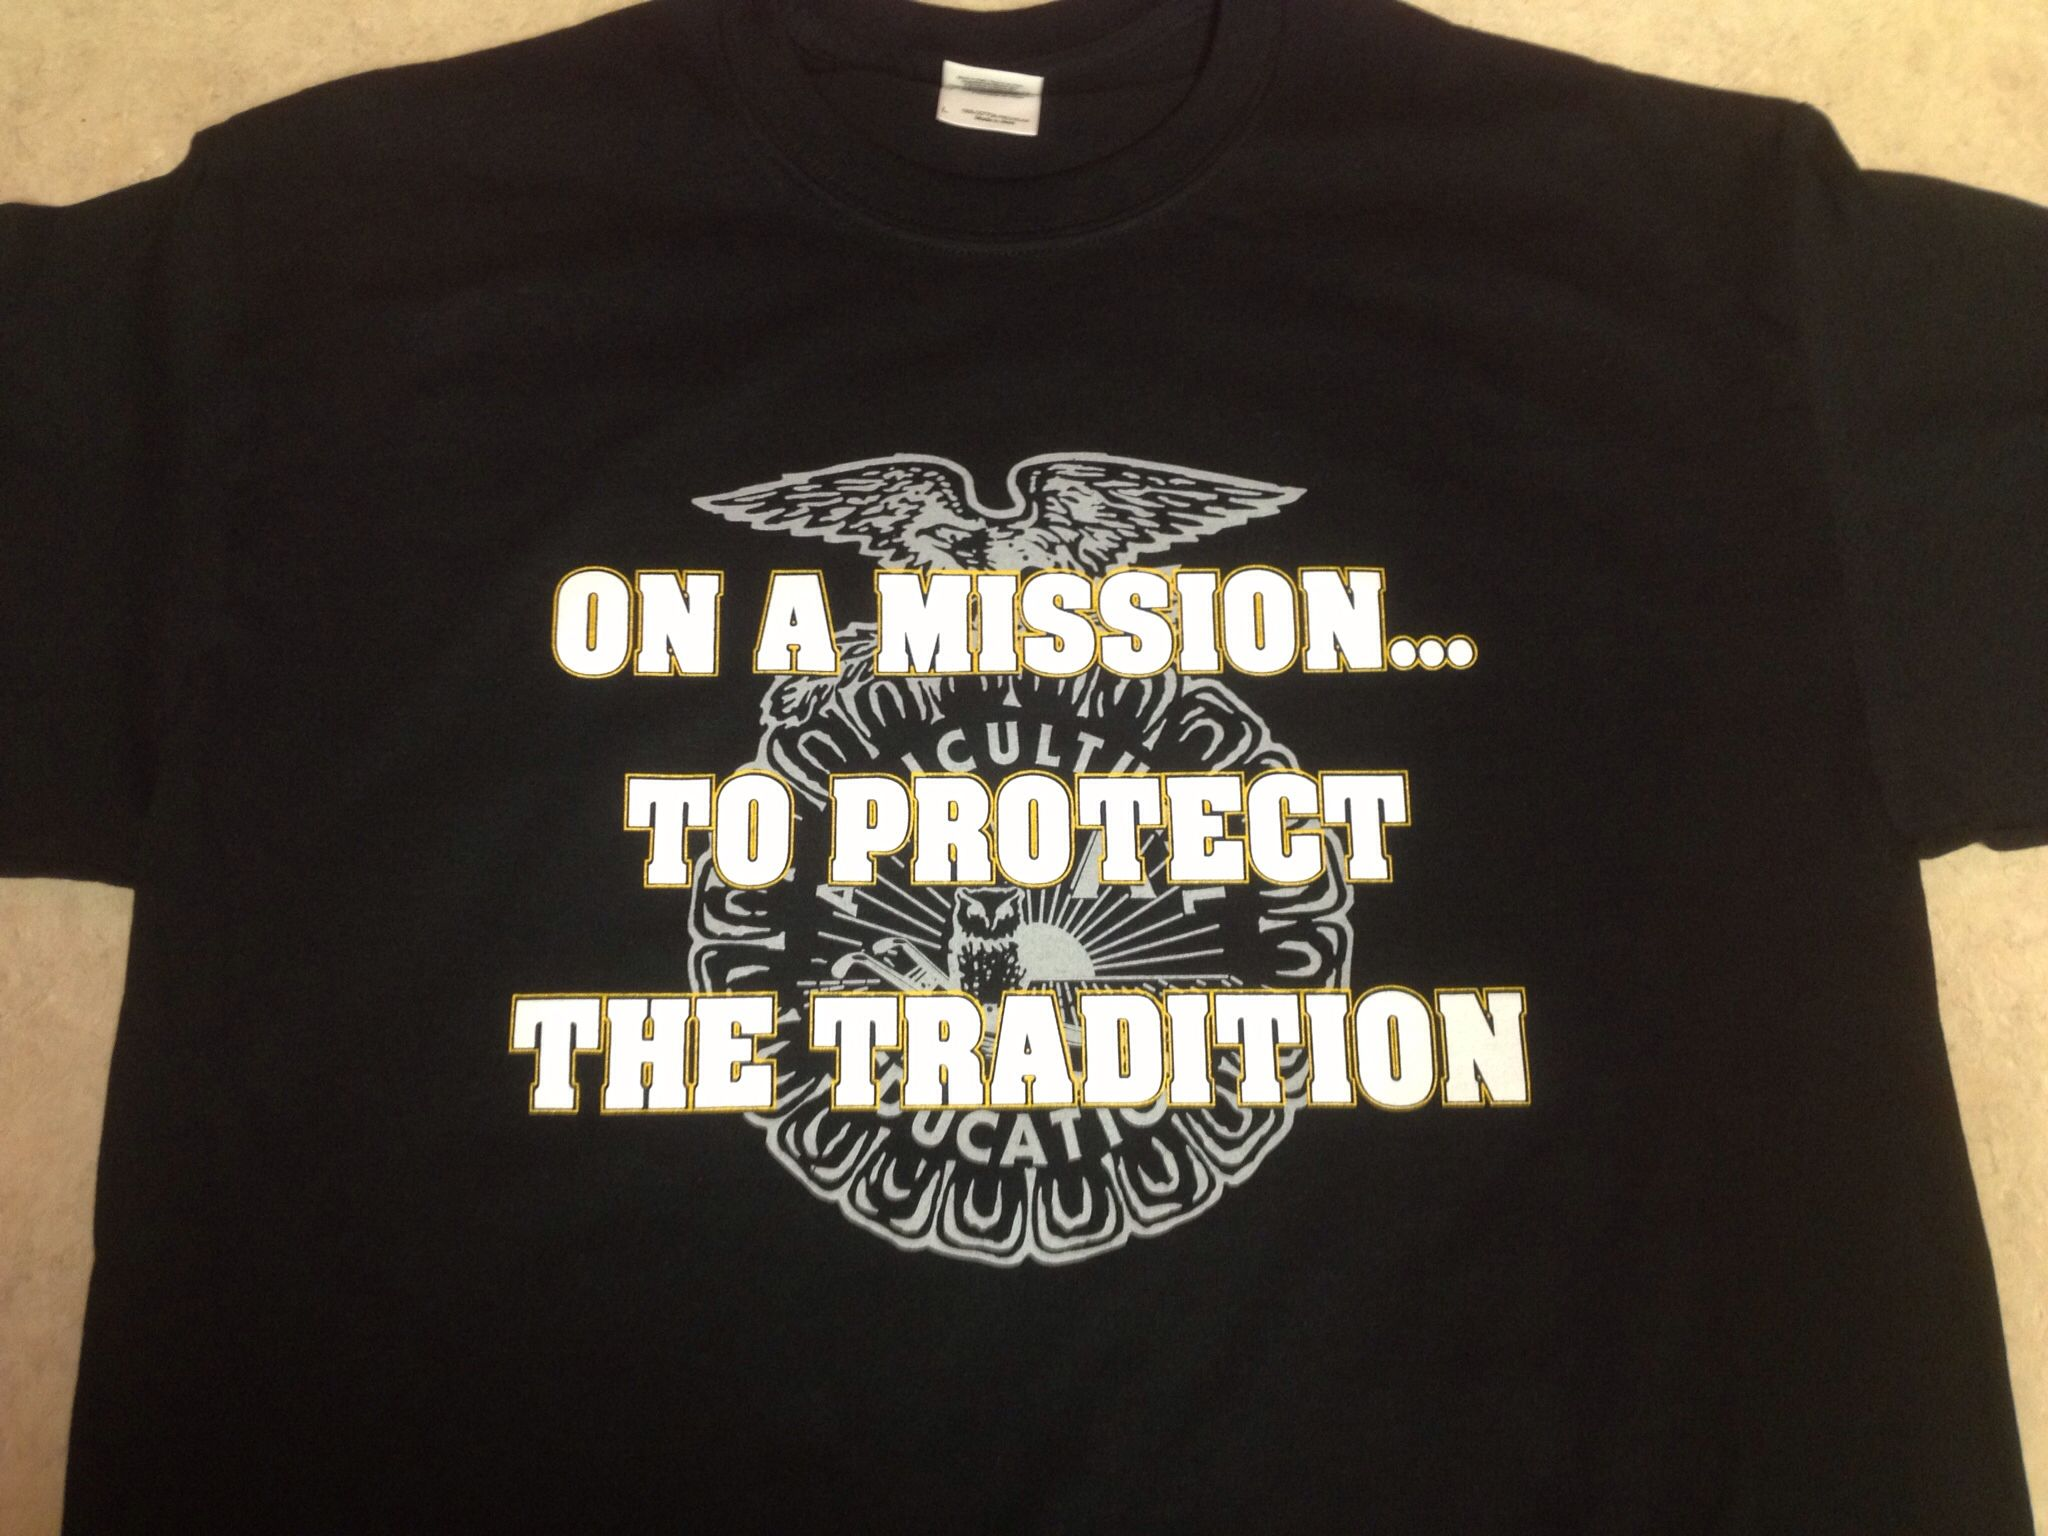 Ozark Ffa On A Mission To Protect The Tradition Ozark Mission Traditional